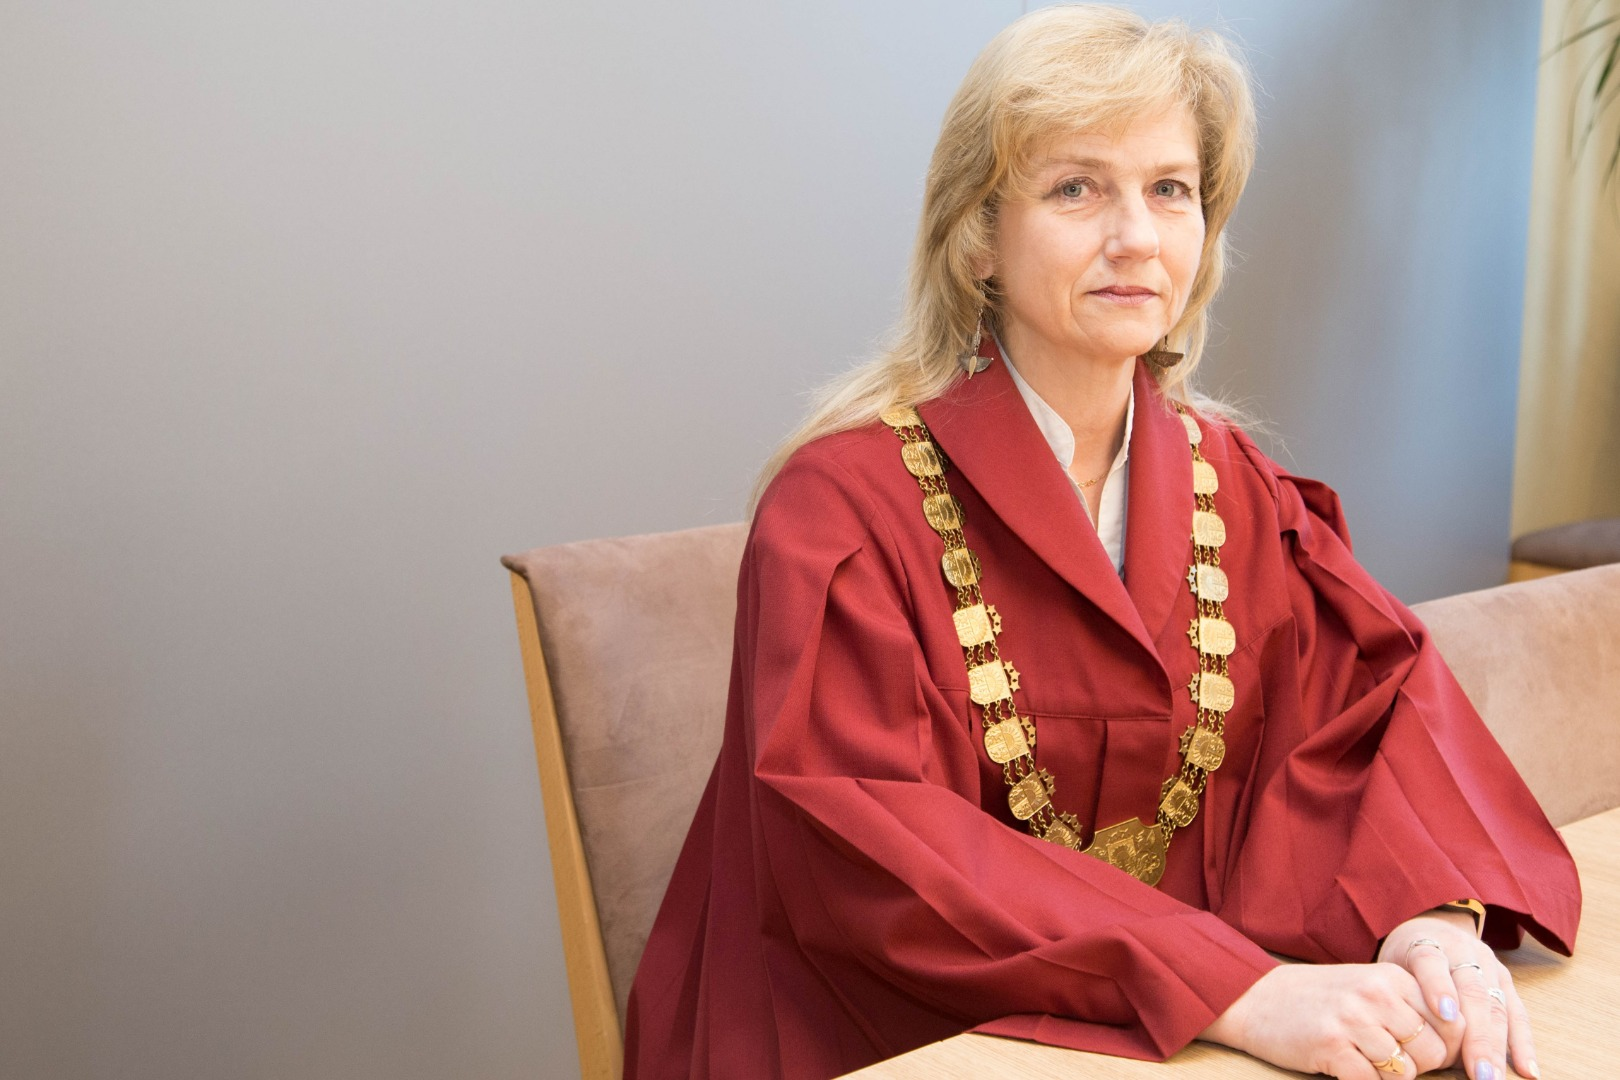 03.02.2020. Inese Laura Zemite took up her work as a judge in the Department of Criminal Cases of the Supreme Court. Her experience as a judge is 22 years. Inese Laura Zemite has been a judge in Riga City Zemgale District Court for eight years, and since 2005 – the Chair of the Criminal Cases Collegium of Riga Regional Court.